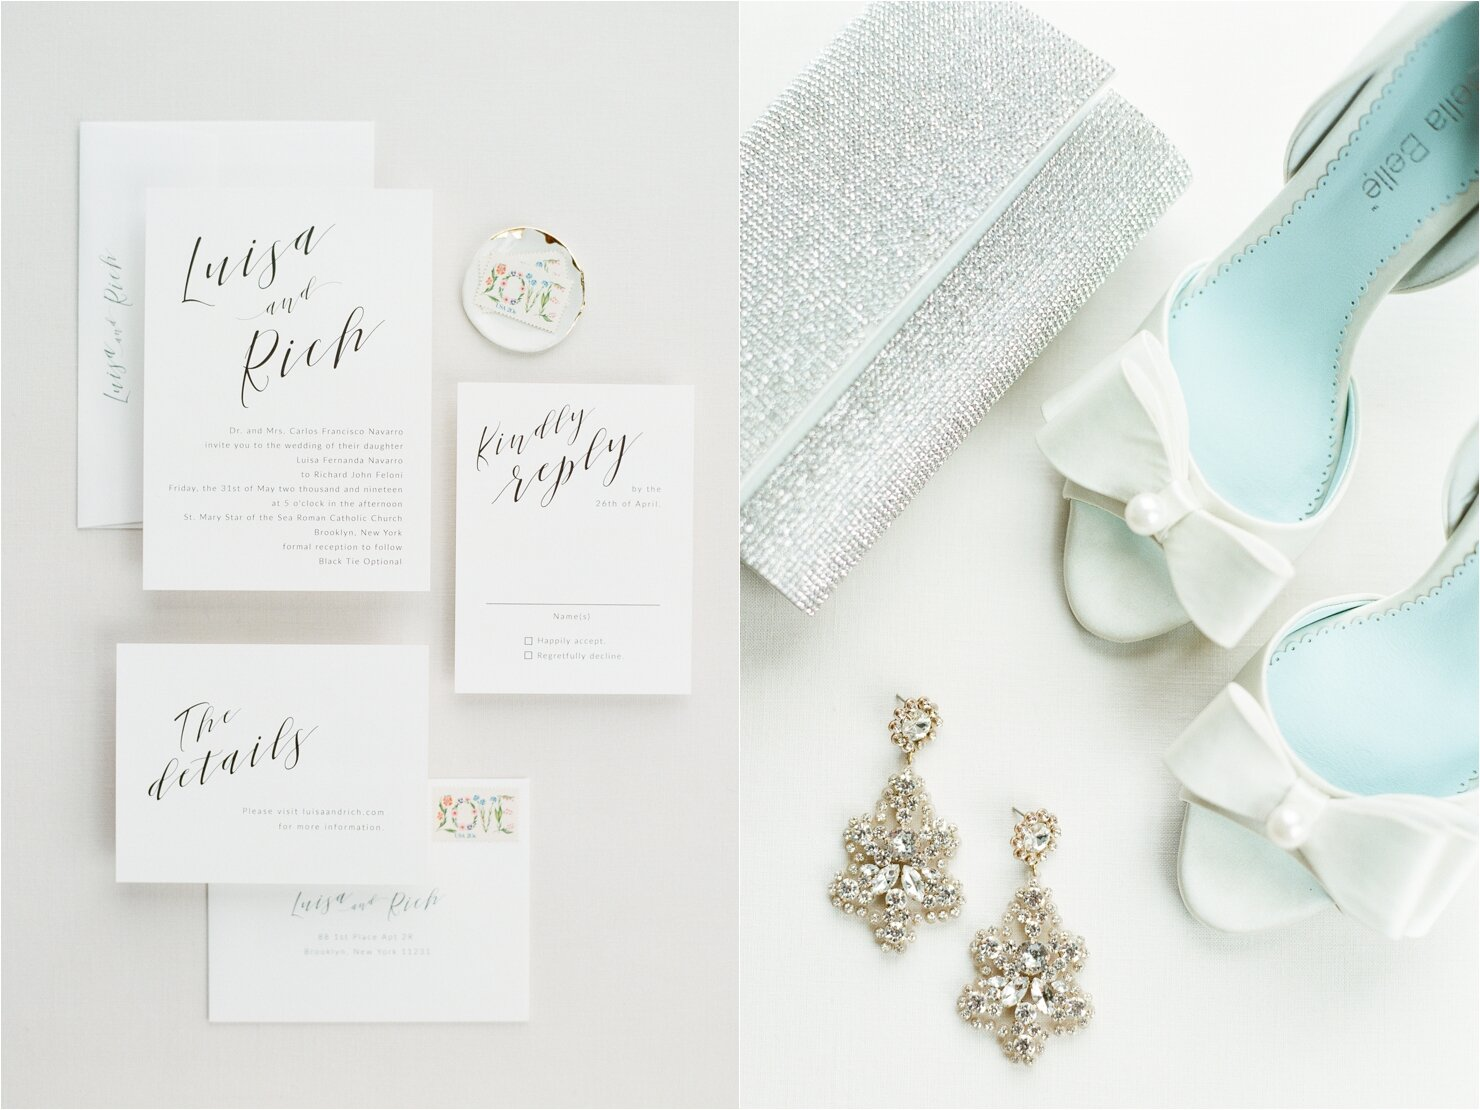 Wedding Day Details - Invitation and Bella Belle Shoes